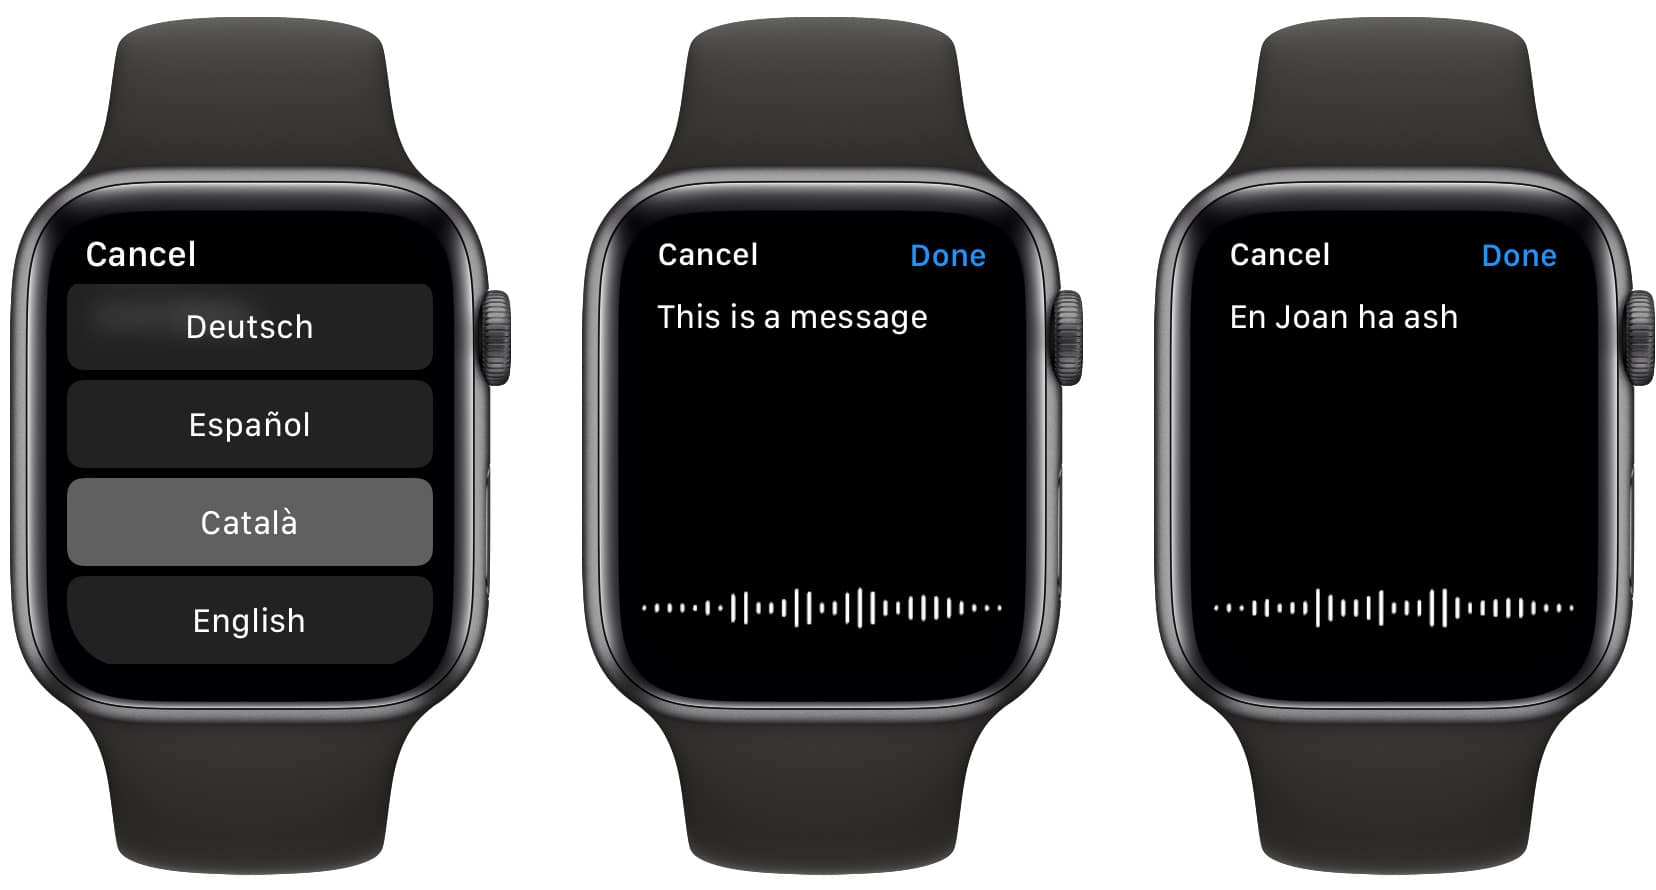 Long-press the Apple Watch dictation screen to get this language-selection menu.